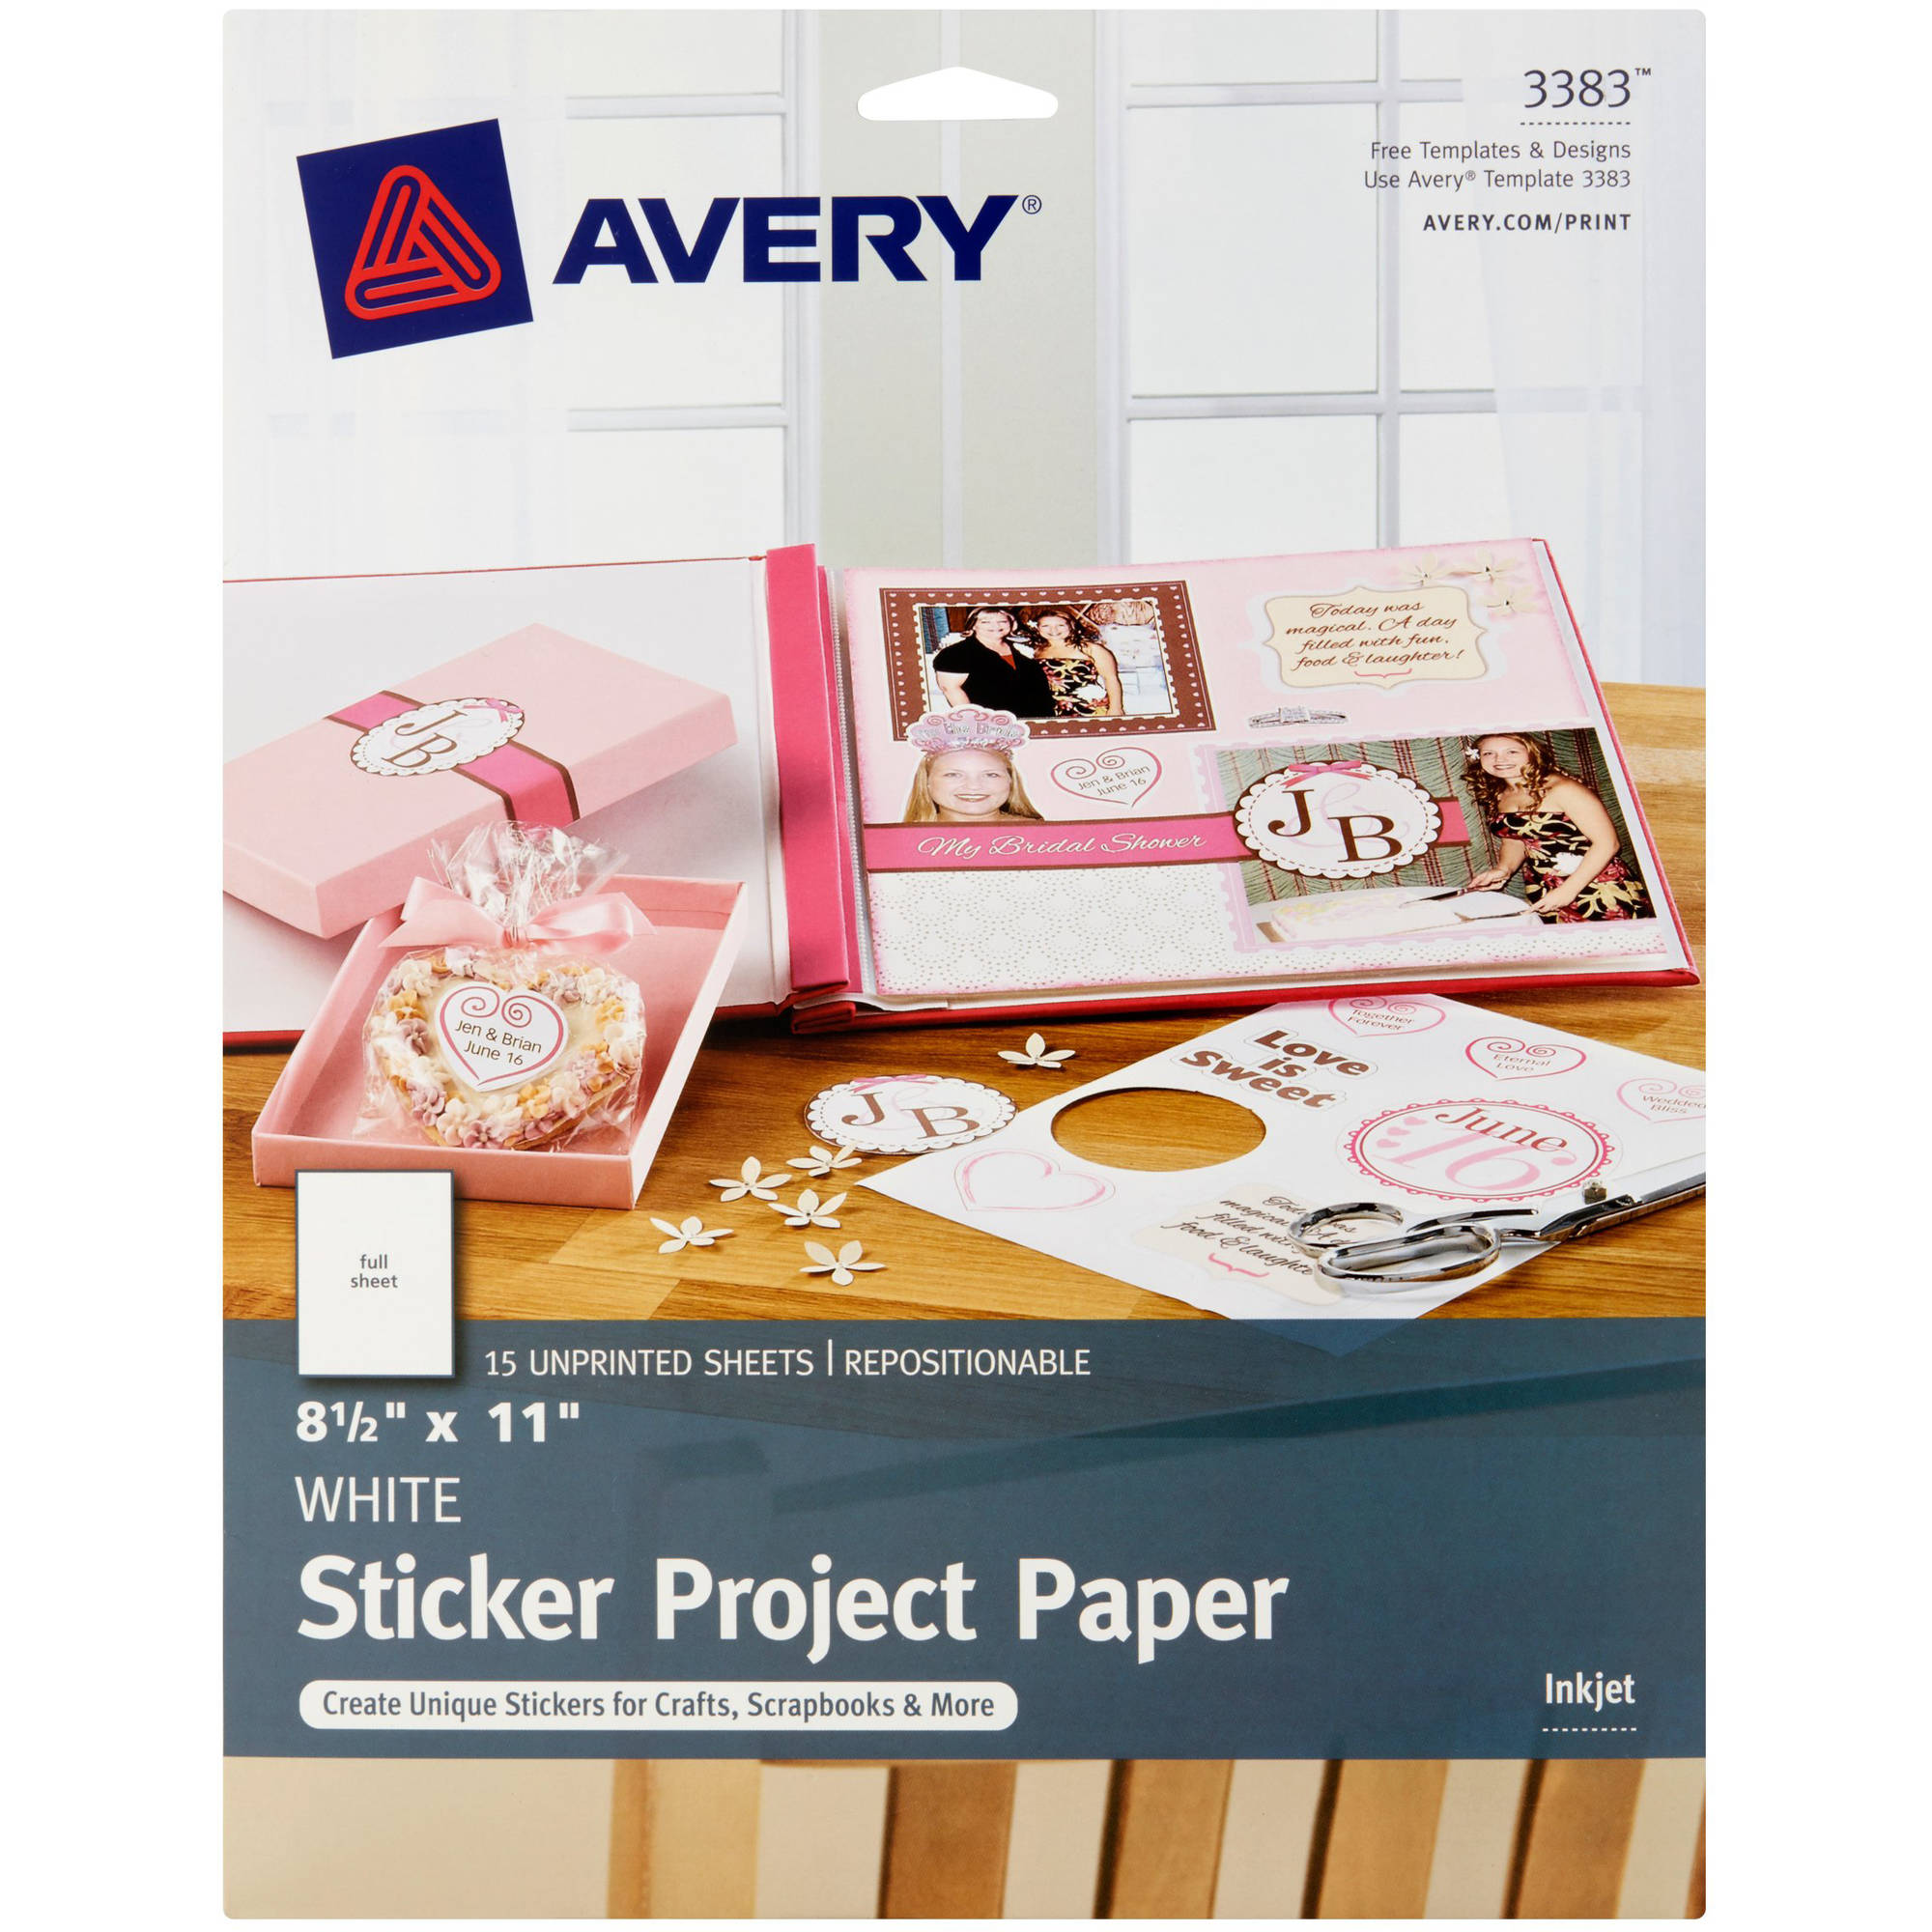 Averyr sticker project paper 3383 8 1 2 x 11 white pack of 15